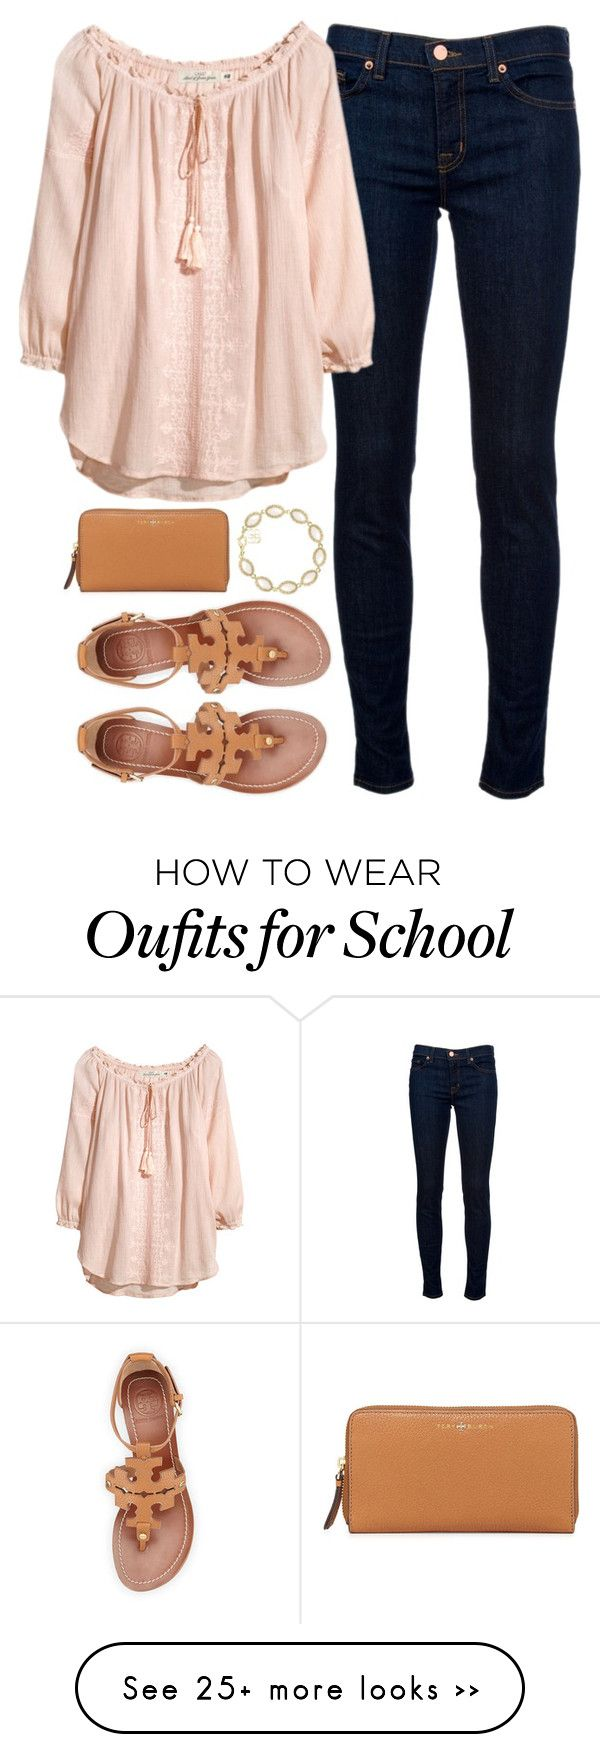 """""""sandals to school"""" by tabooty on Polyvore featuring J Brand, Tory Burch and Kendra Scott"""